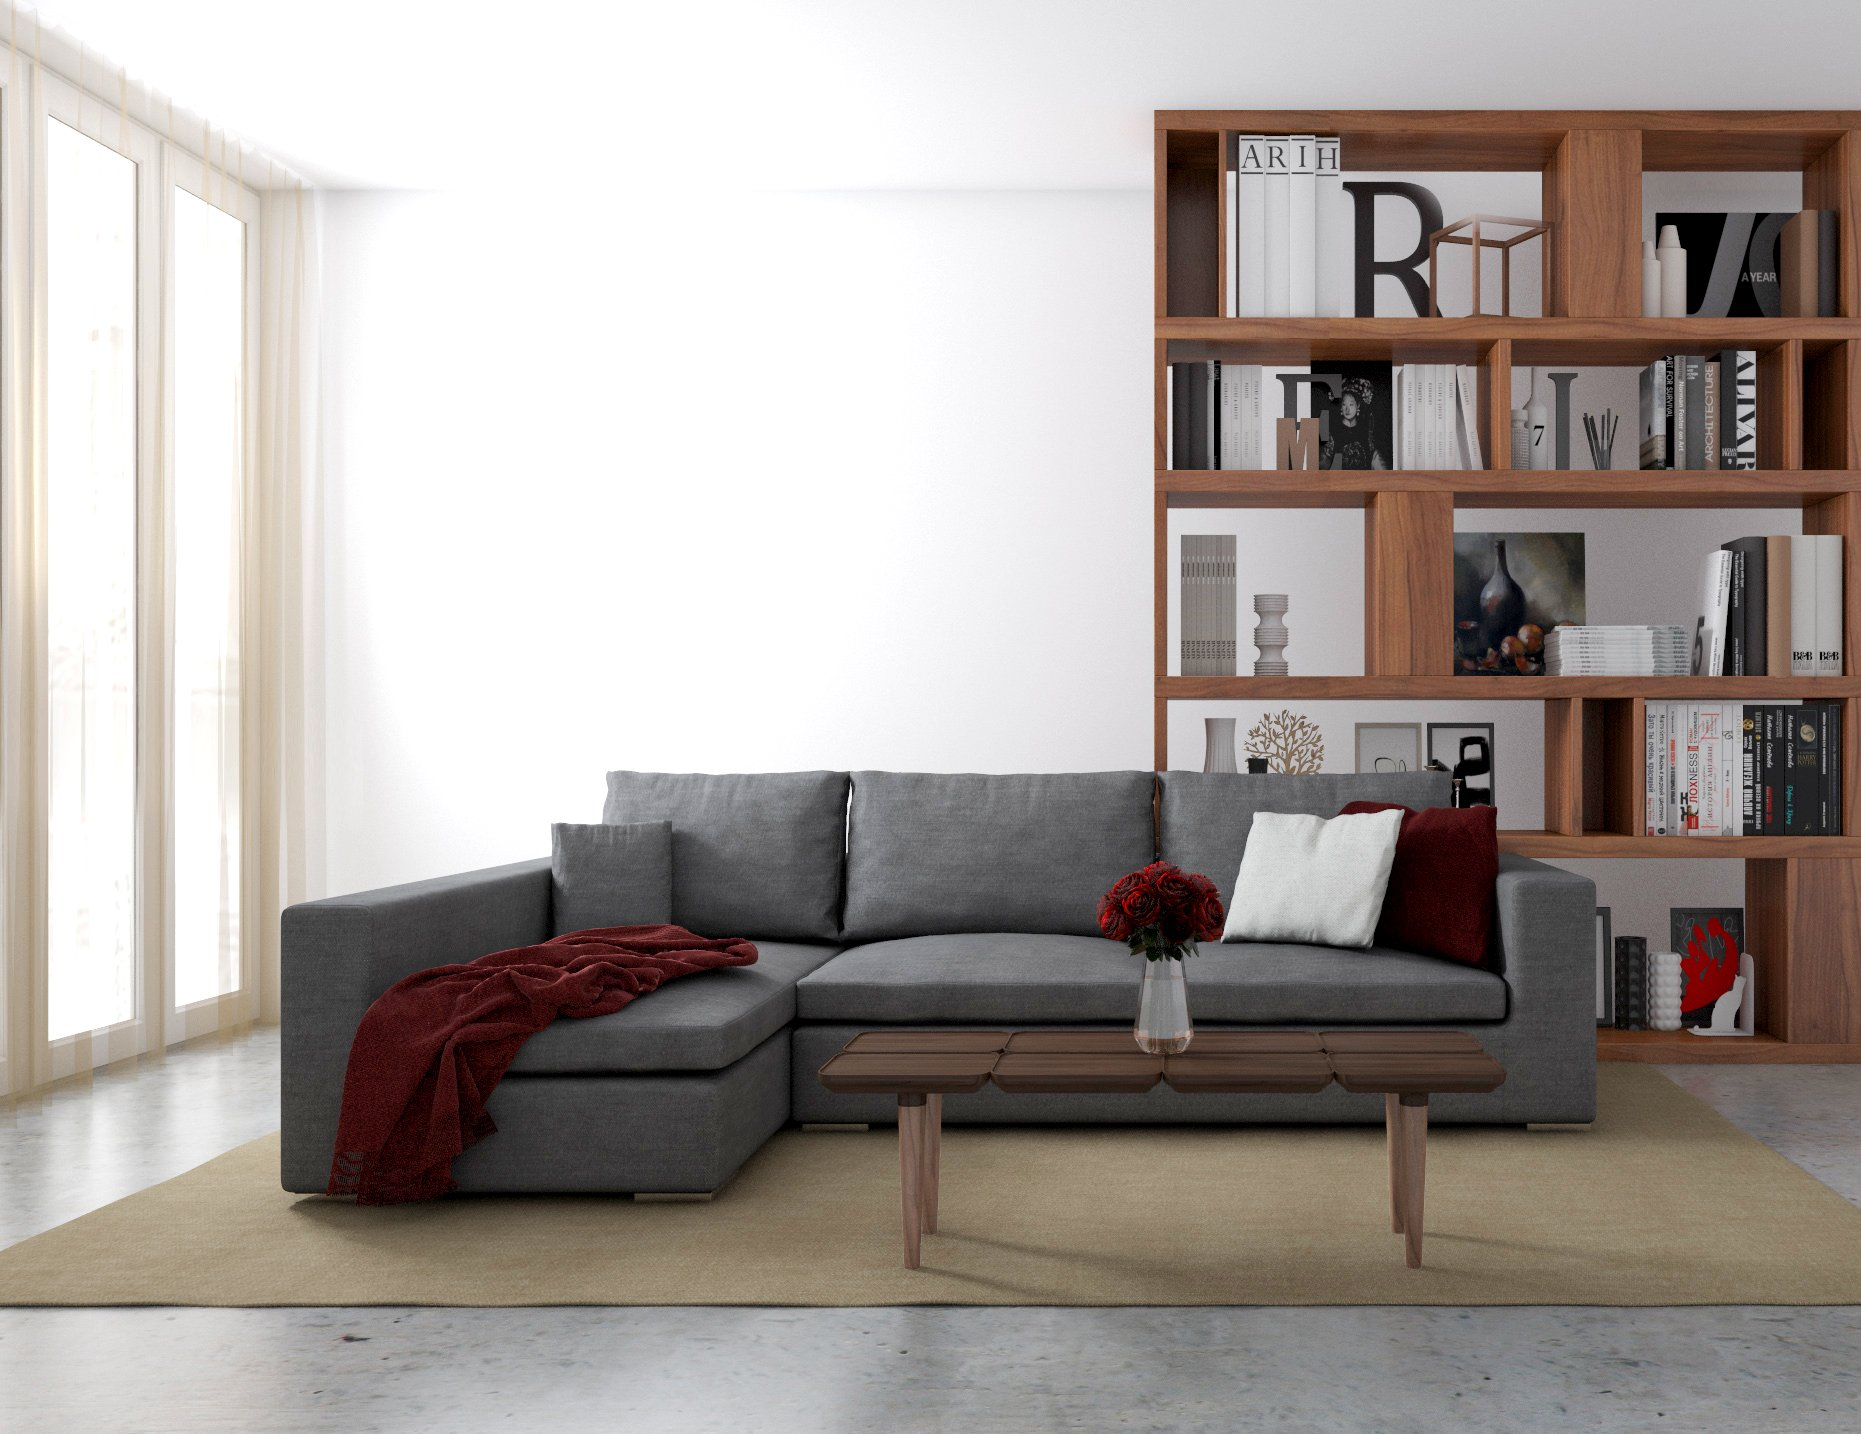 KMP Furniture Coleen Sectional Sofa & Right Chaise Lounge - White - Highly detailed upholstery and precisely stitched. Fade resistant fabric. High-density resiliency foam seats and back with sturdy spring system. - sofas-couches, living-room-furniture, living-room - 81WxQrXj39L -